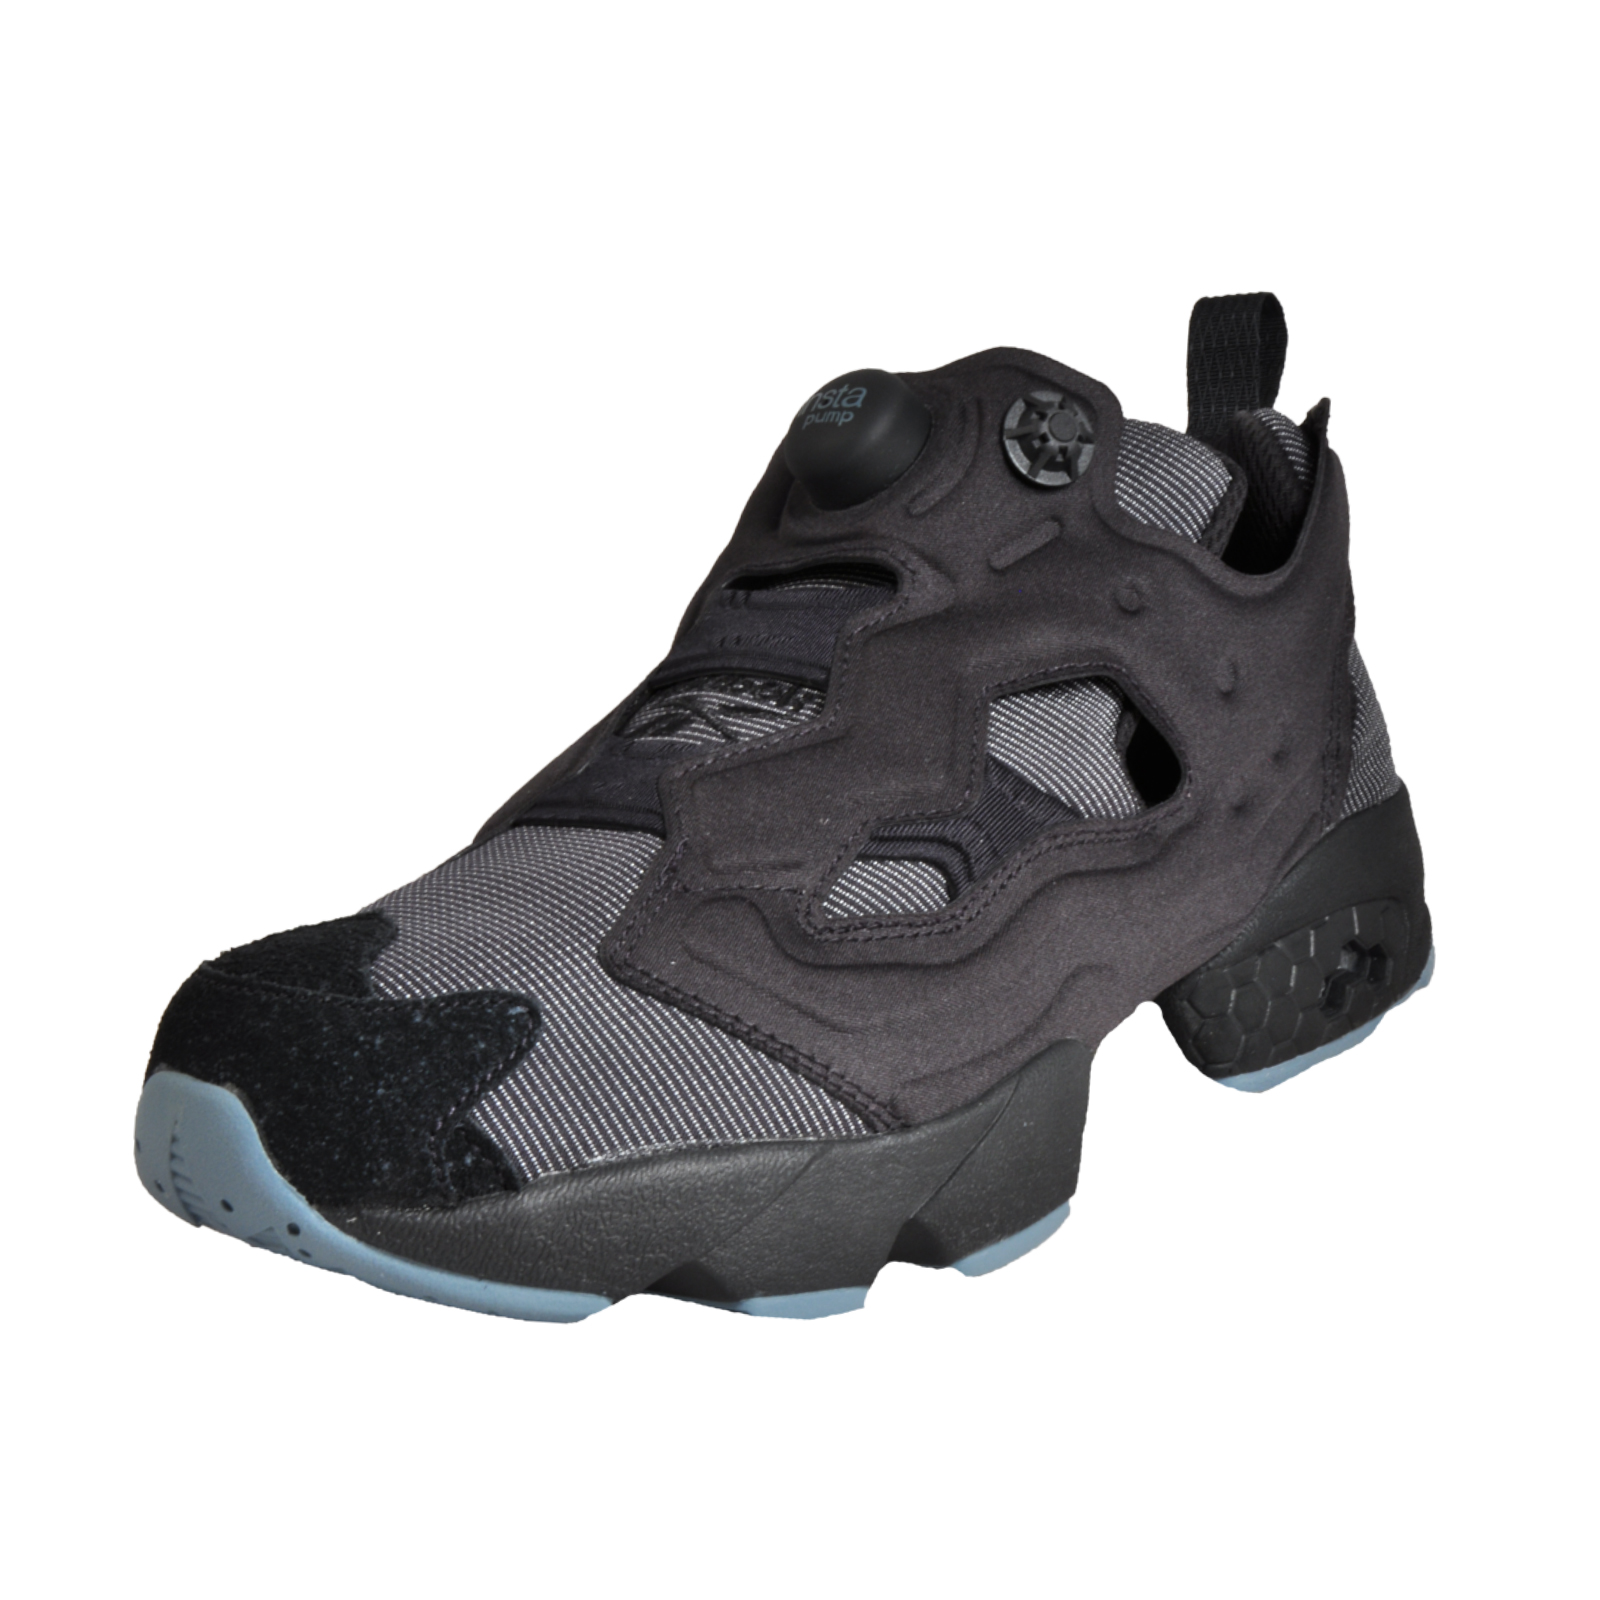 9889bc13e7f021 Details about Reebok Classic Instapump Fury MTP Mens Classic Retro Running  Trainers Black